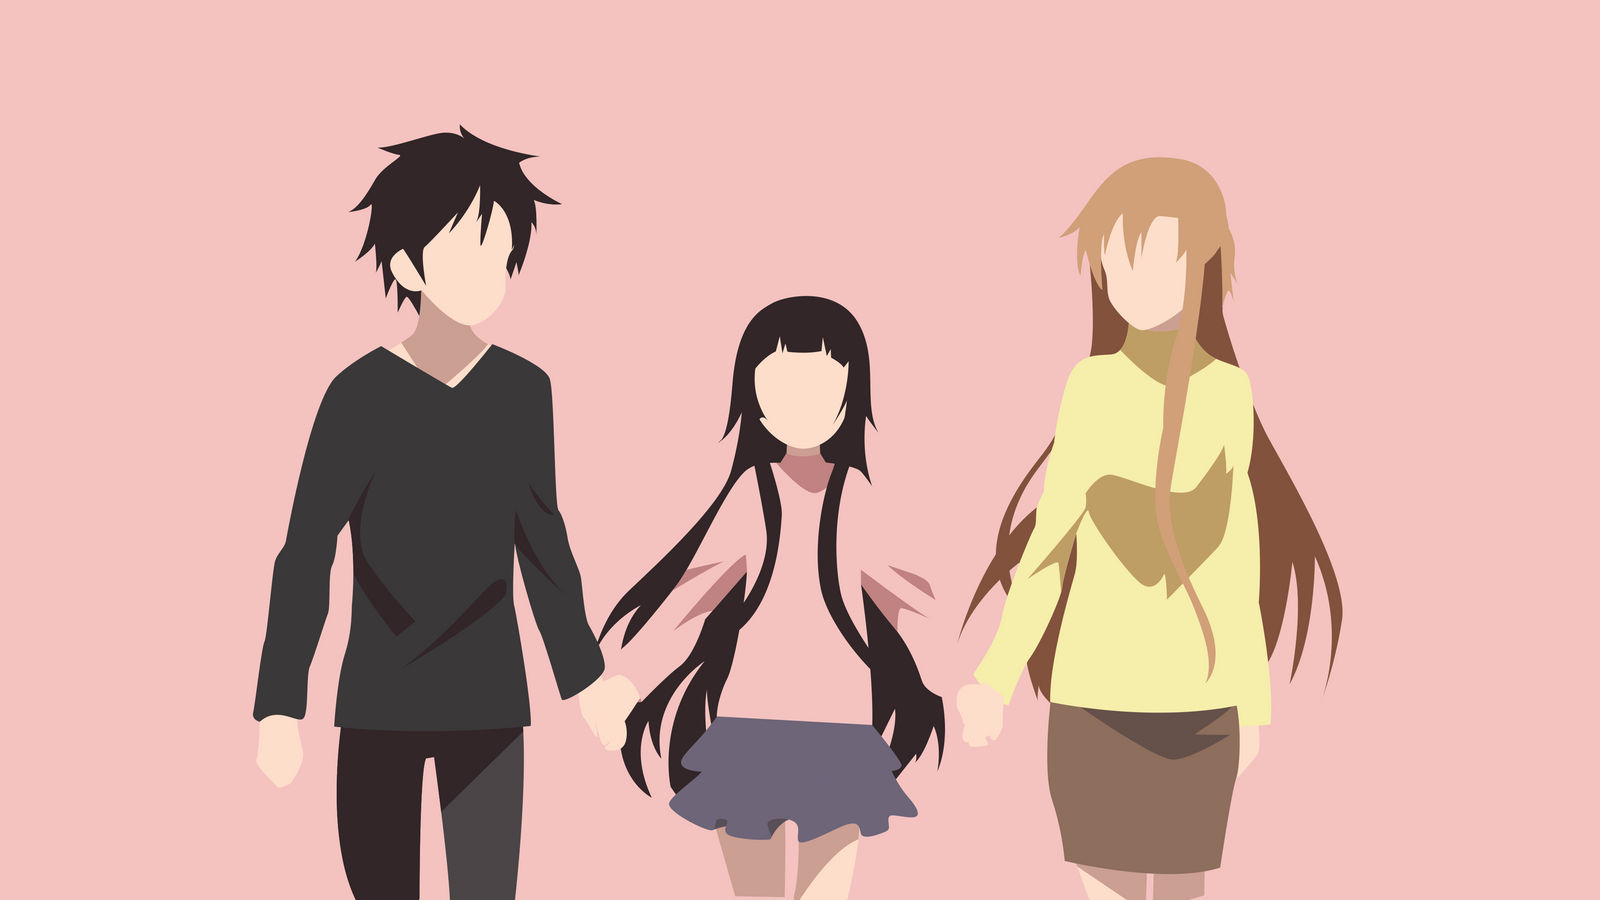 Kirito Asuna And Yui Wallpaper By Norkfeddog On Deviantart